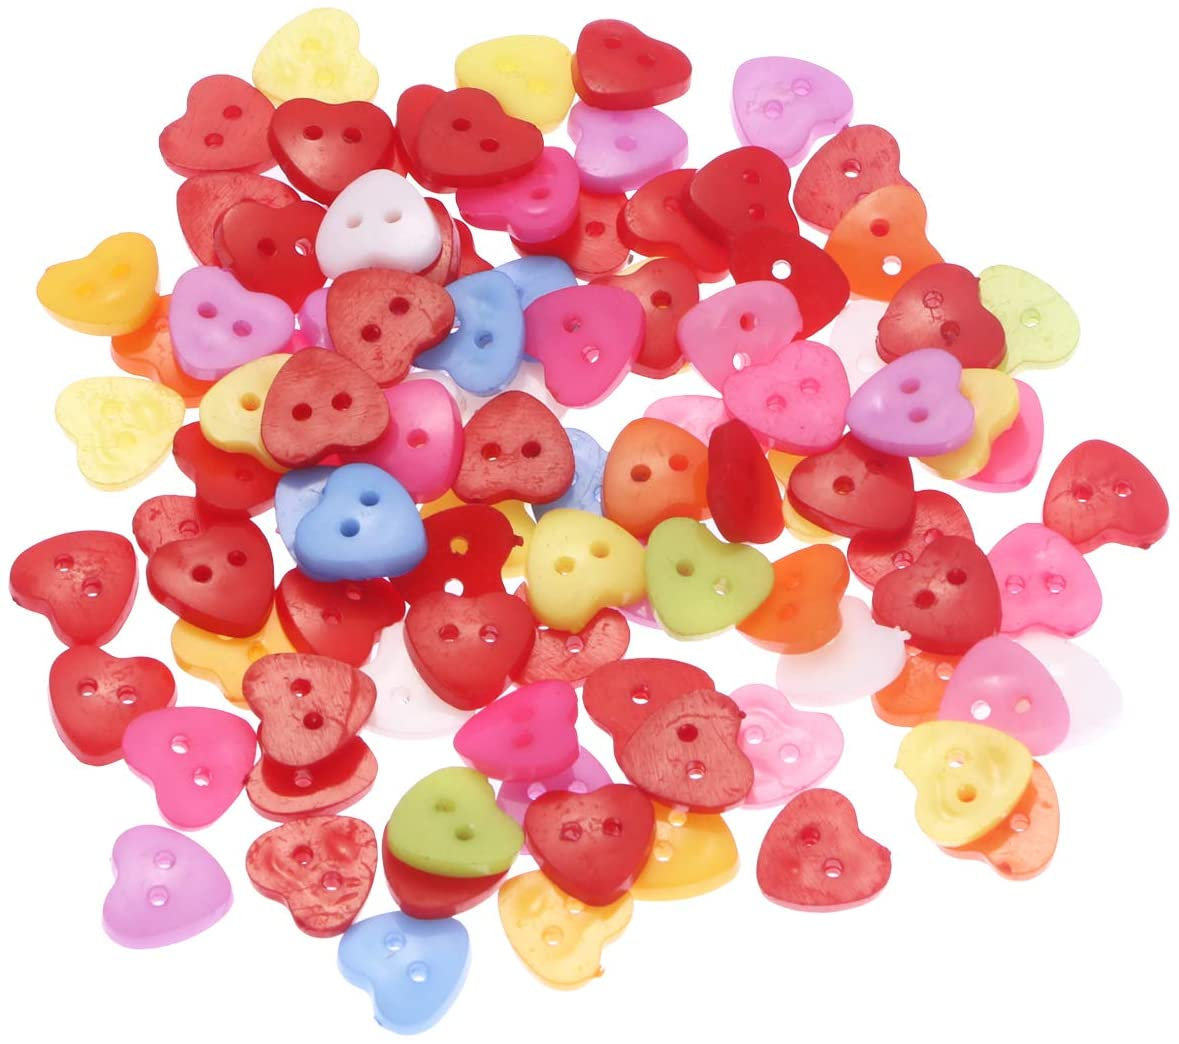 Foxnovo 100pcs Cute Heart Shaped Multicolor 2 Holes Resin Sewing Buttons for Sewing /Scrapbooking /Knitting (Random Color)